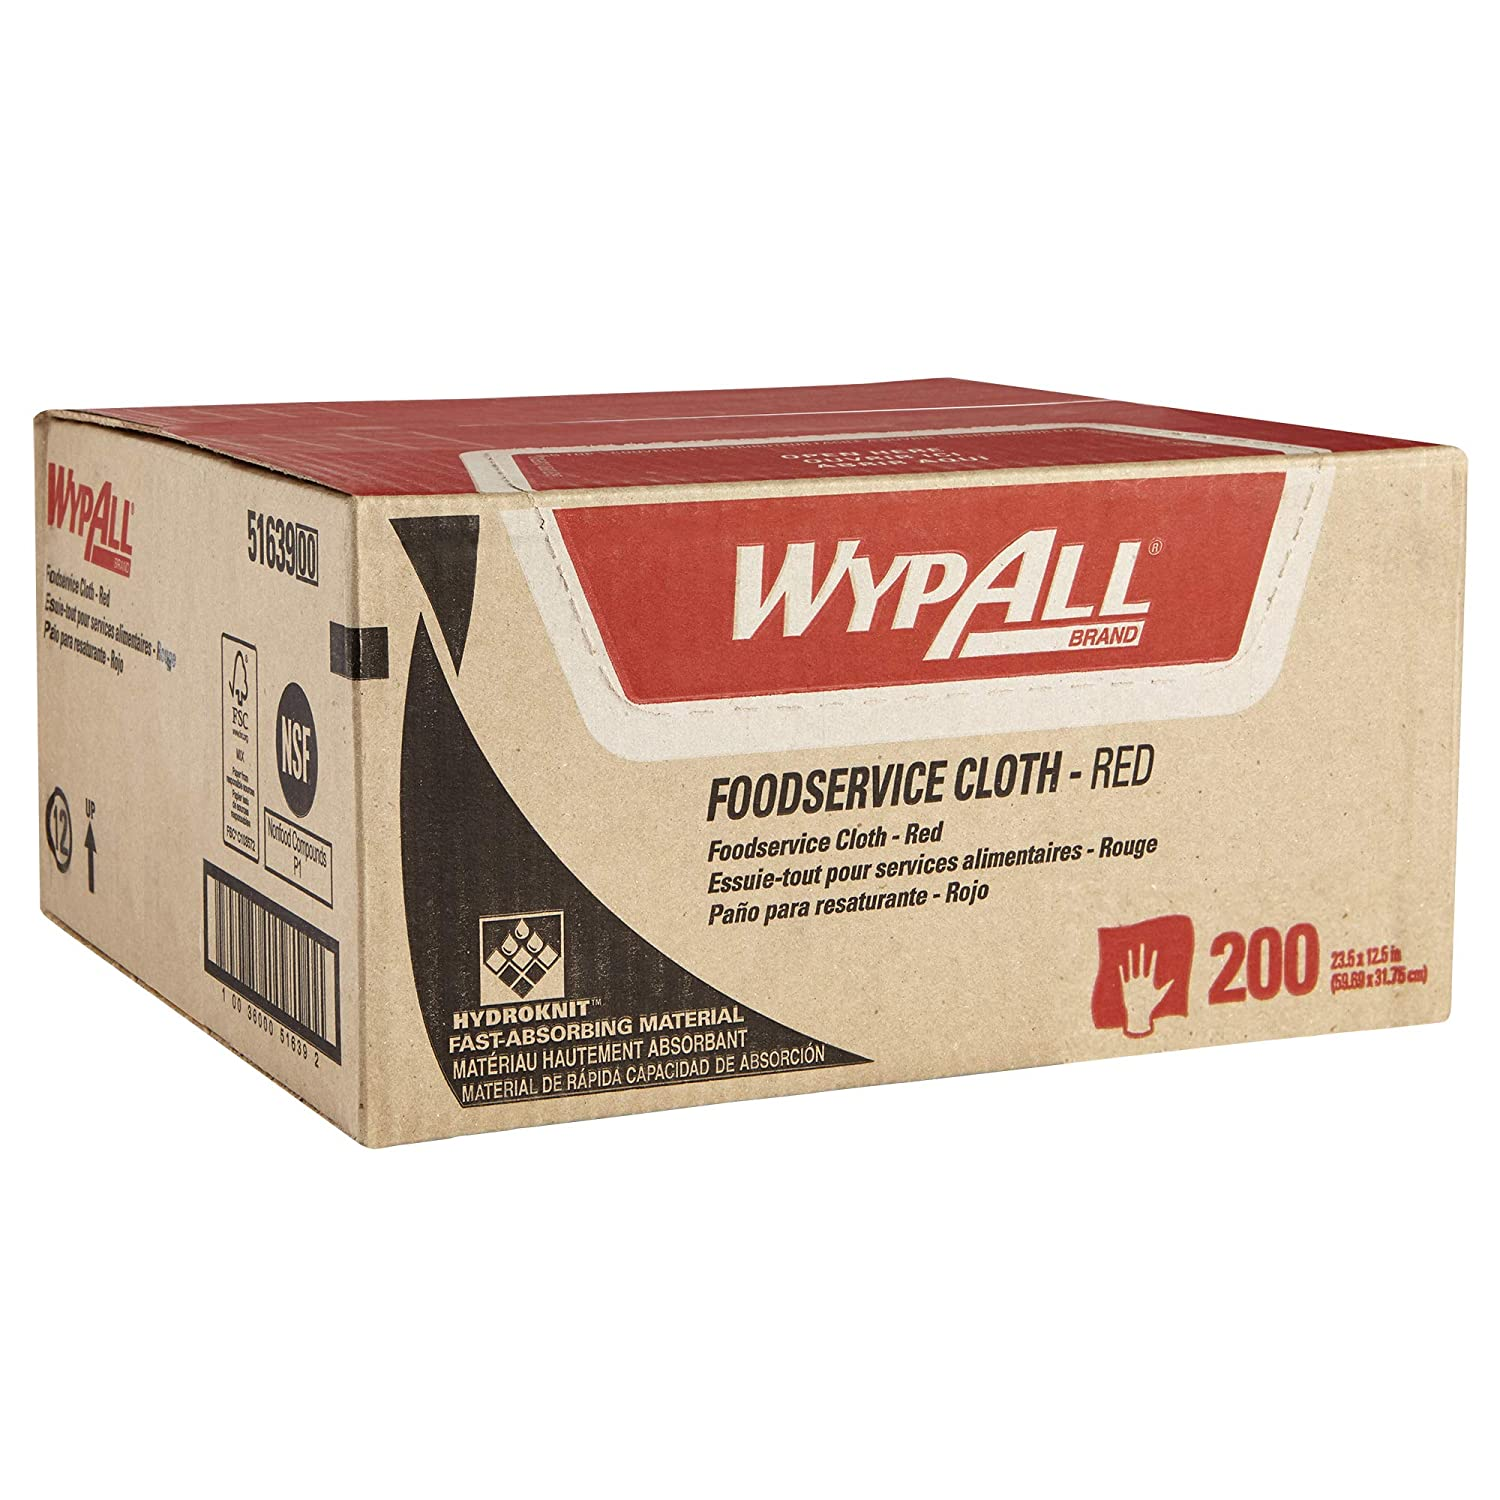 WypAll Foodservice Extended Use Reusable Cloths (51639), Quarterfold, Red Cloths, 1 Box, 200 Sheets